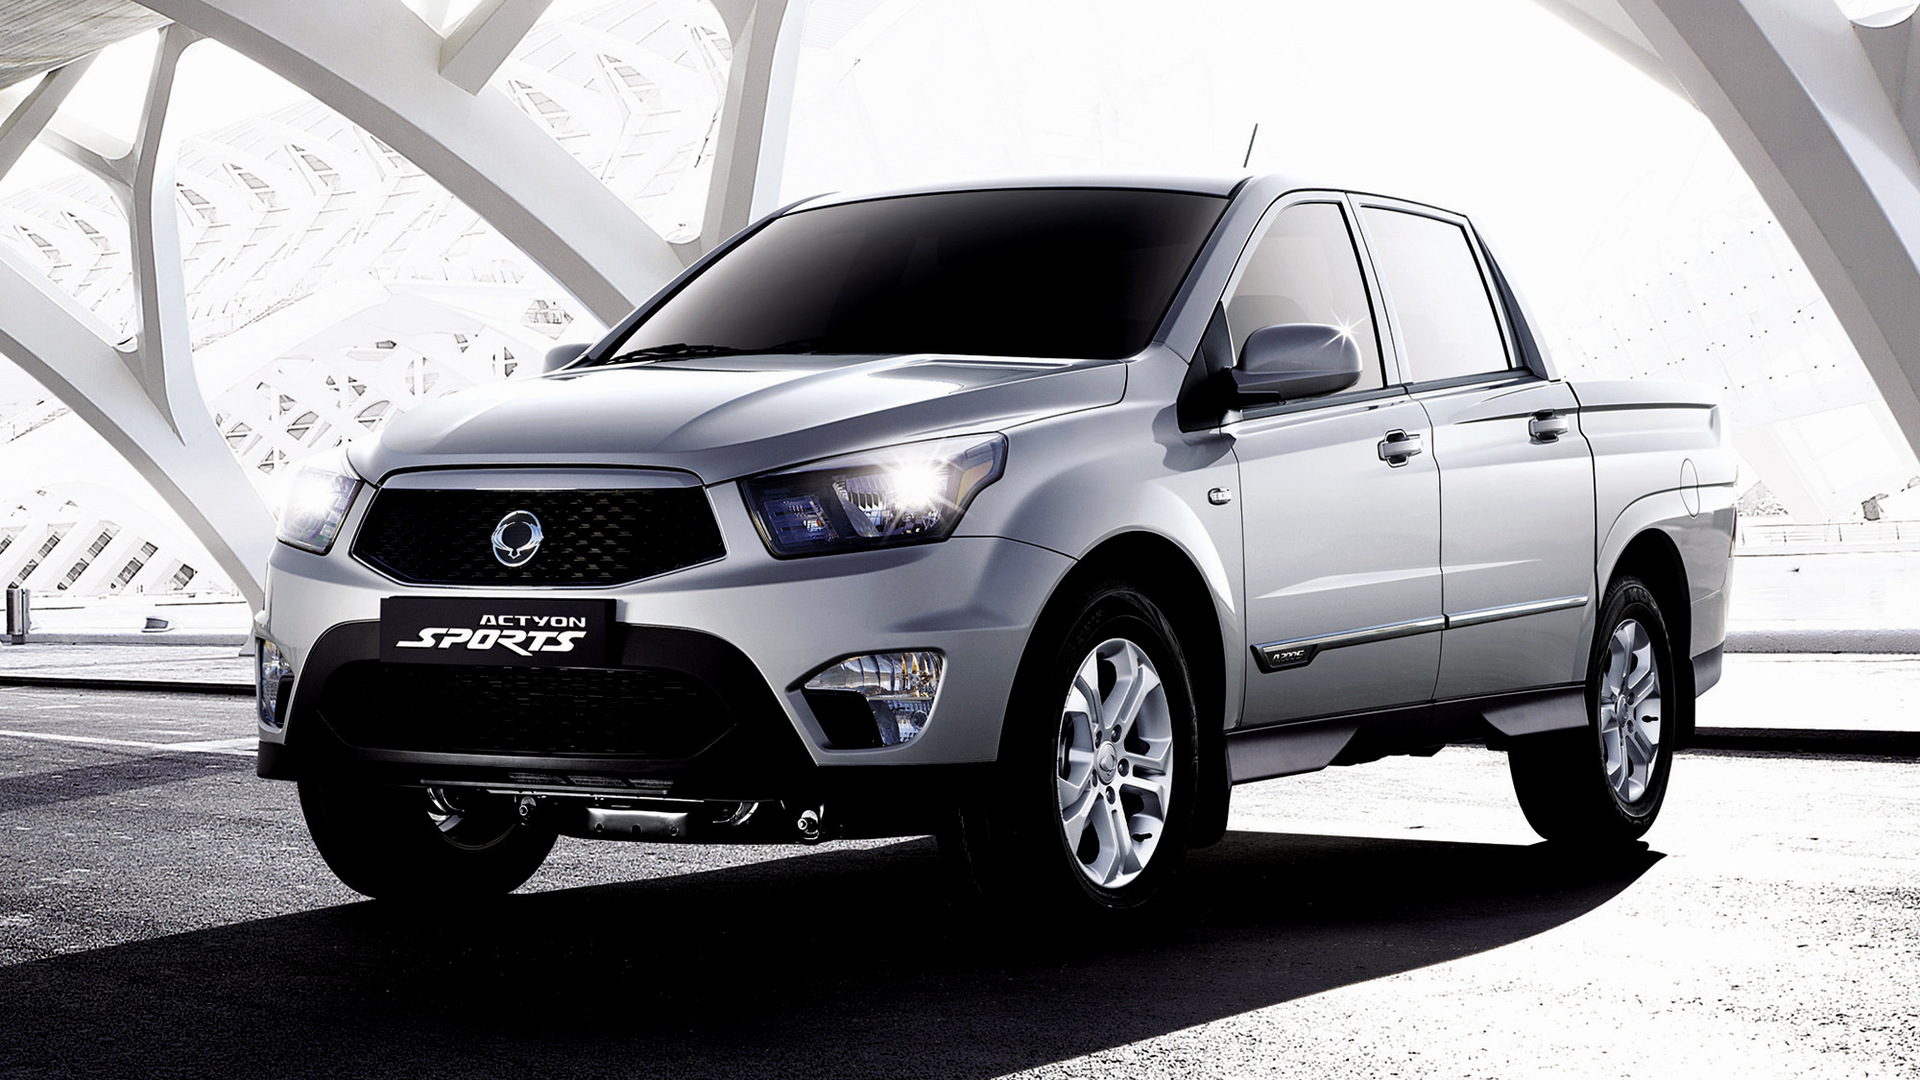 ssangyong actyon sports 2012 wallpapers and hd images car pixel. Black Bedroom Furniture Sets. Home Design Ideas